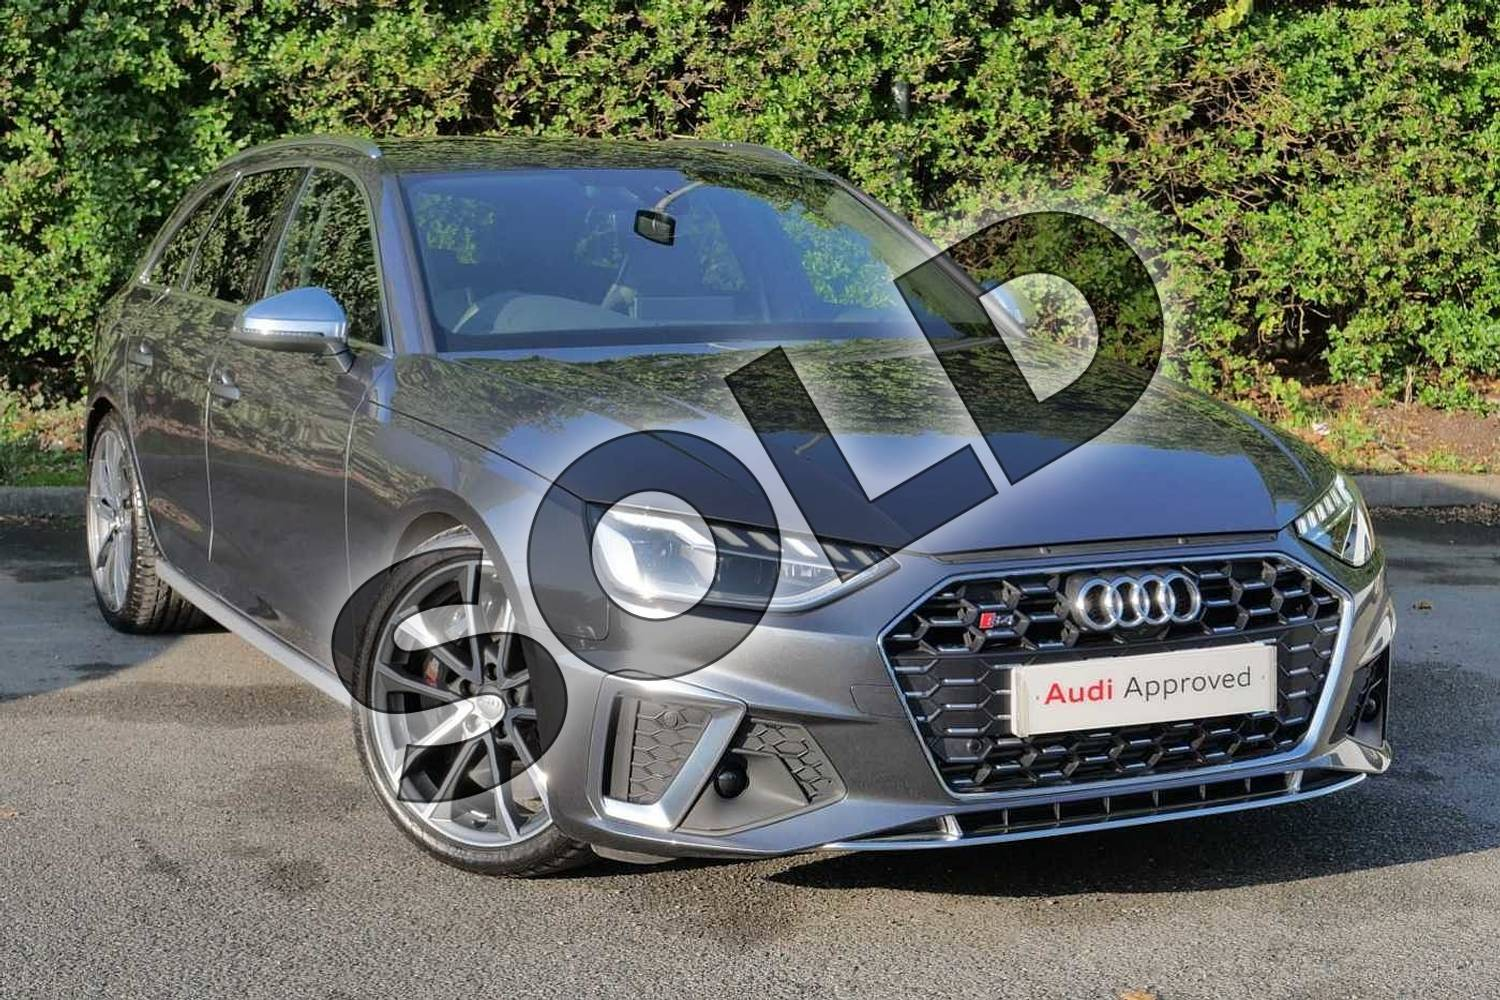 2020 Audi A4 Diesel Avant S4 TDI Quattro 5dr Tiptronic in Daytona Grey Pearlescent at Worcester Audi